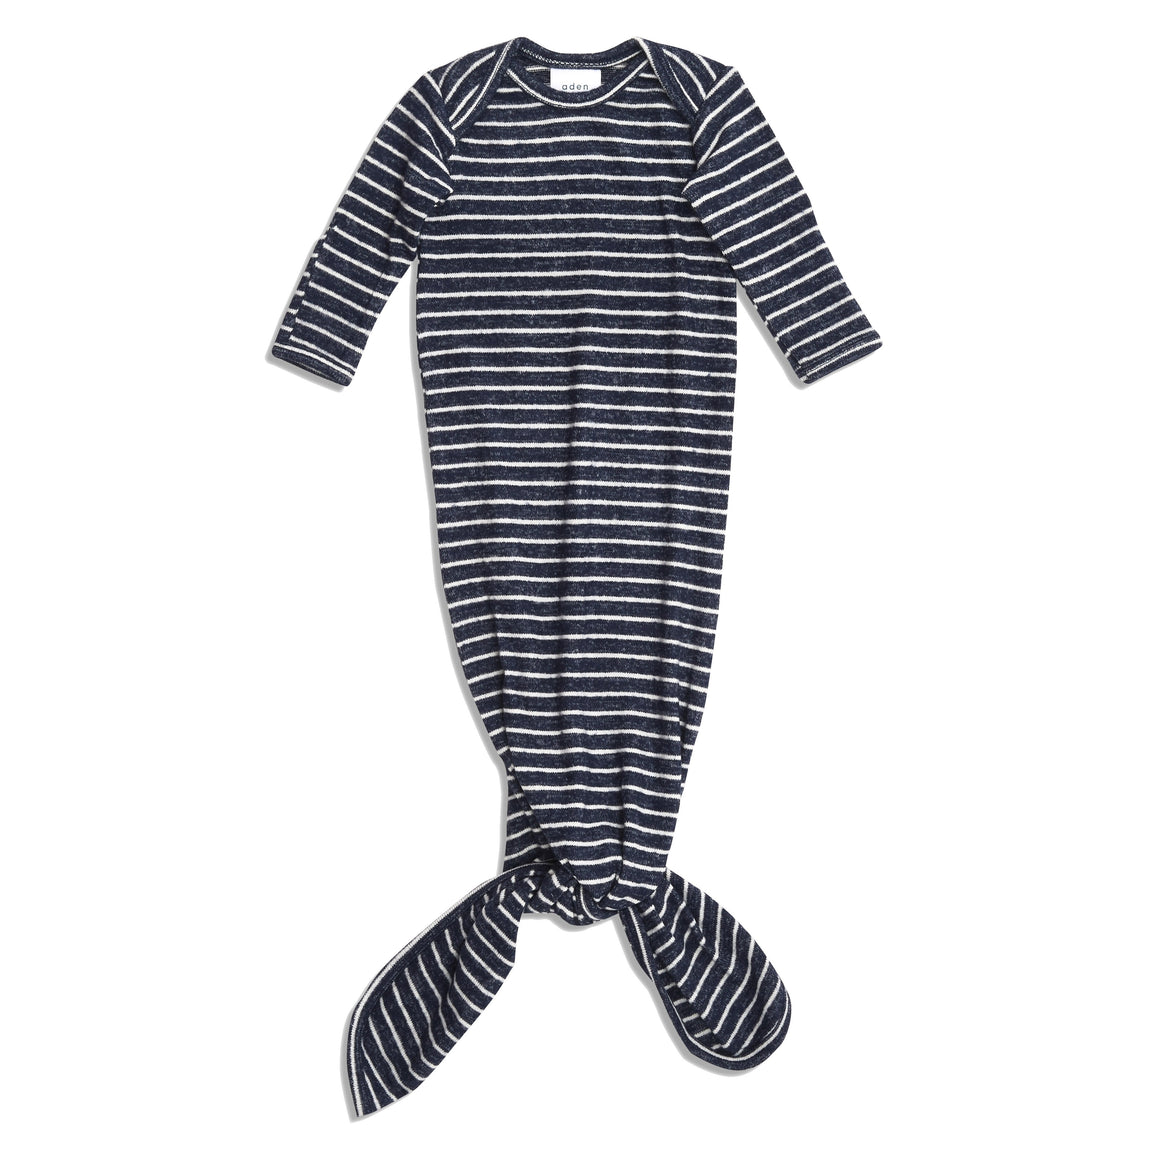 aden+anais snuggle knit gown - navy stripes